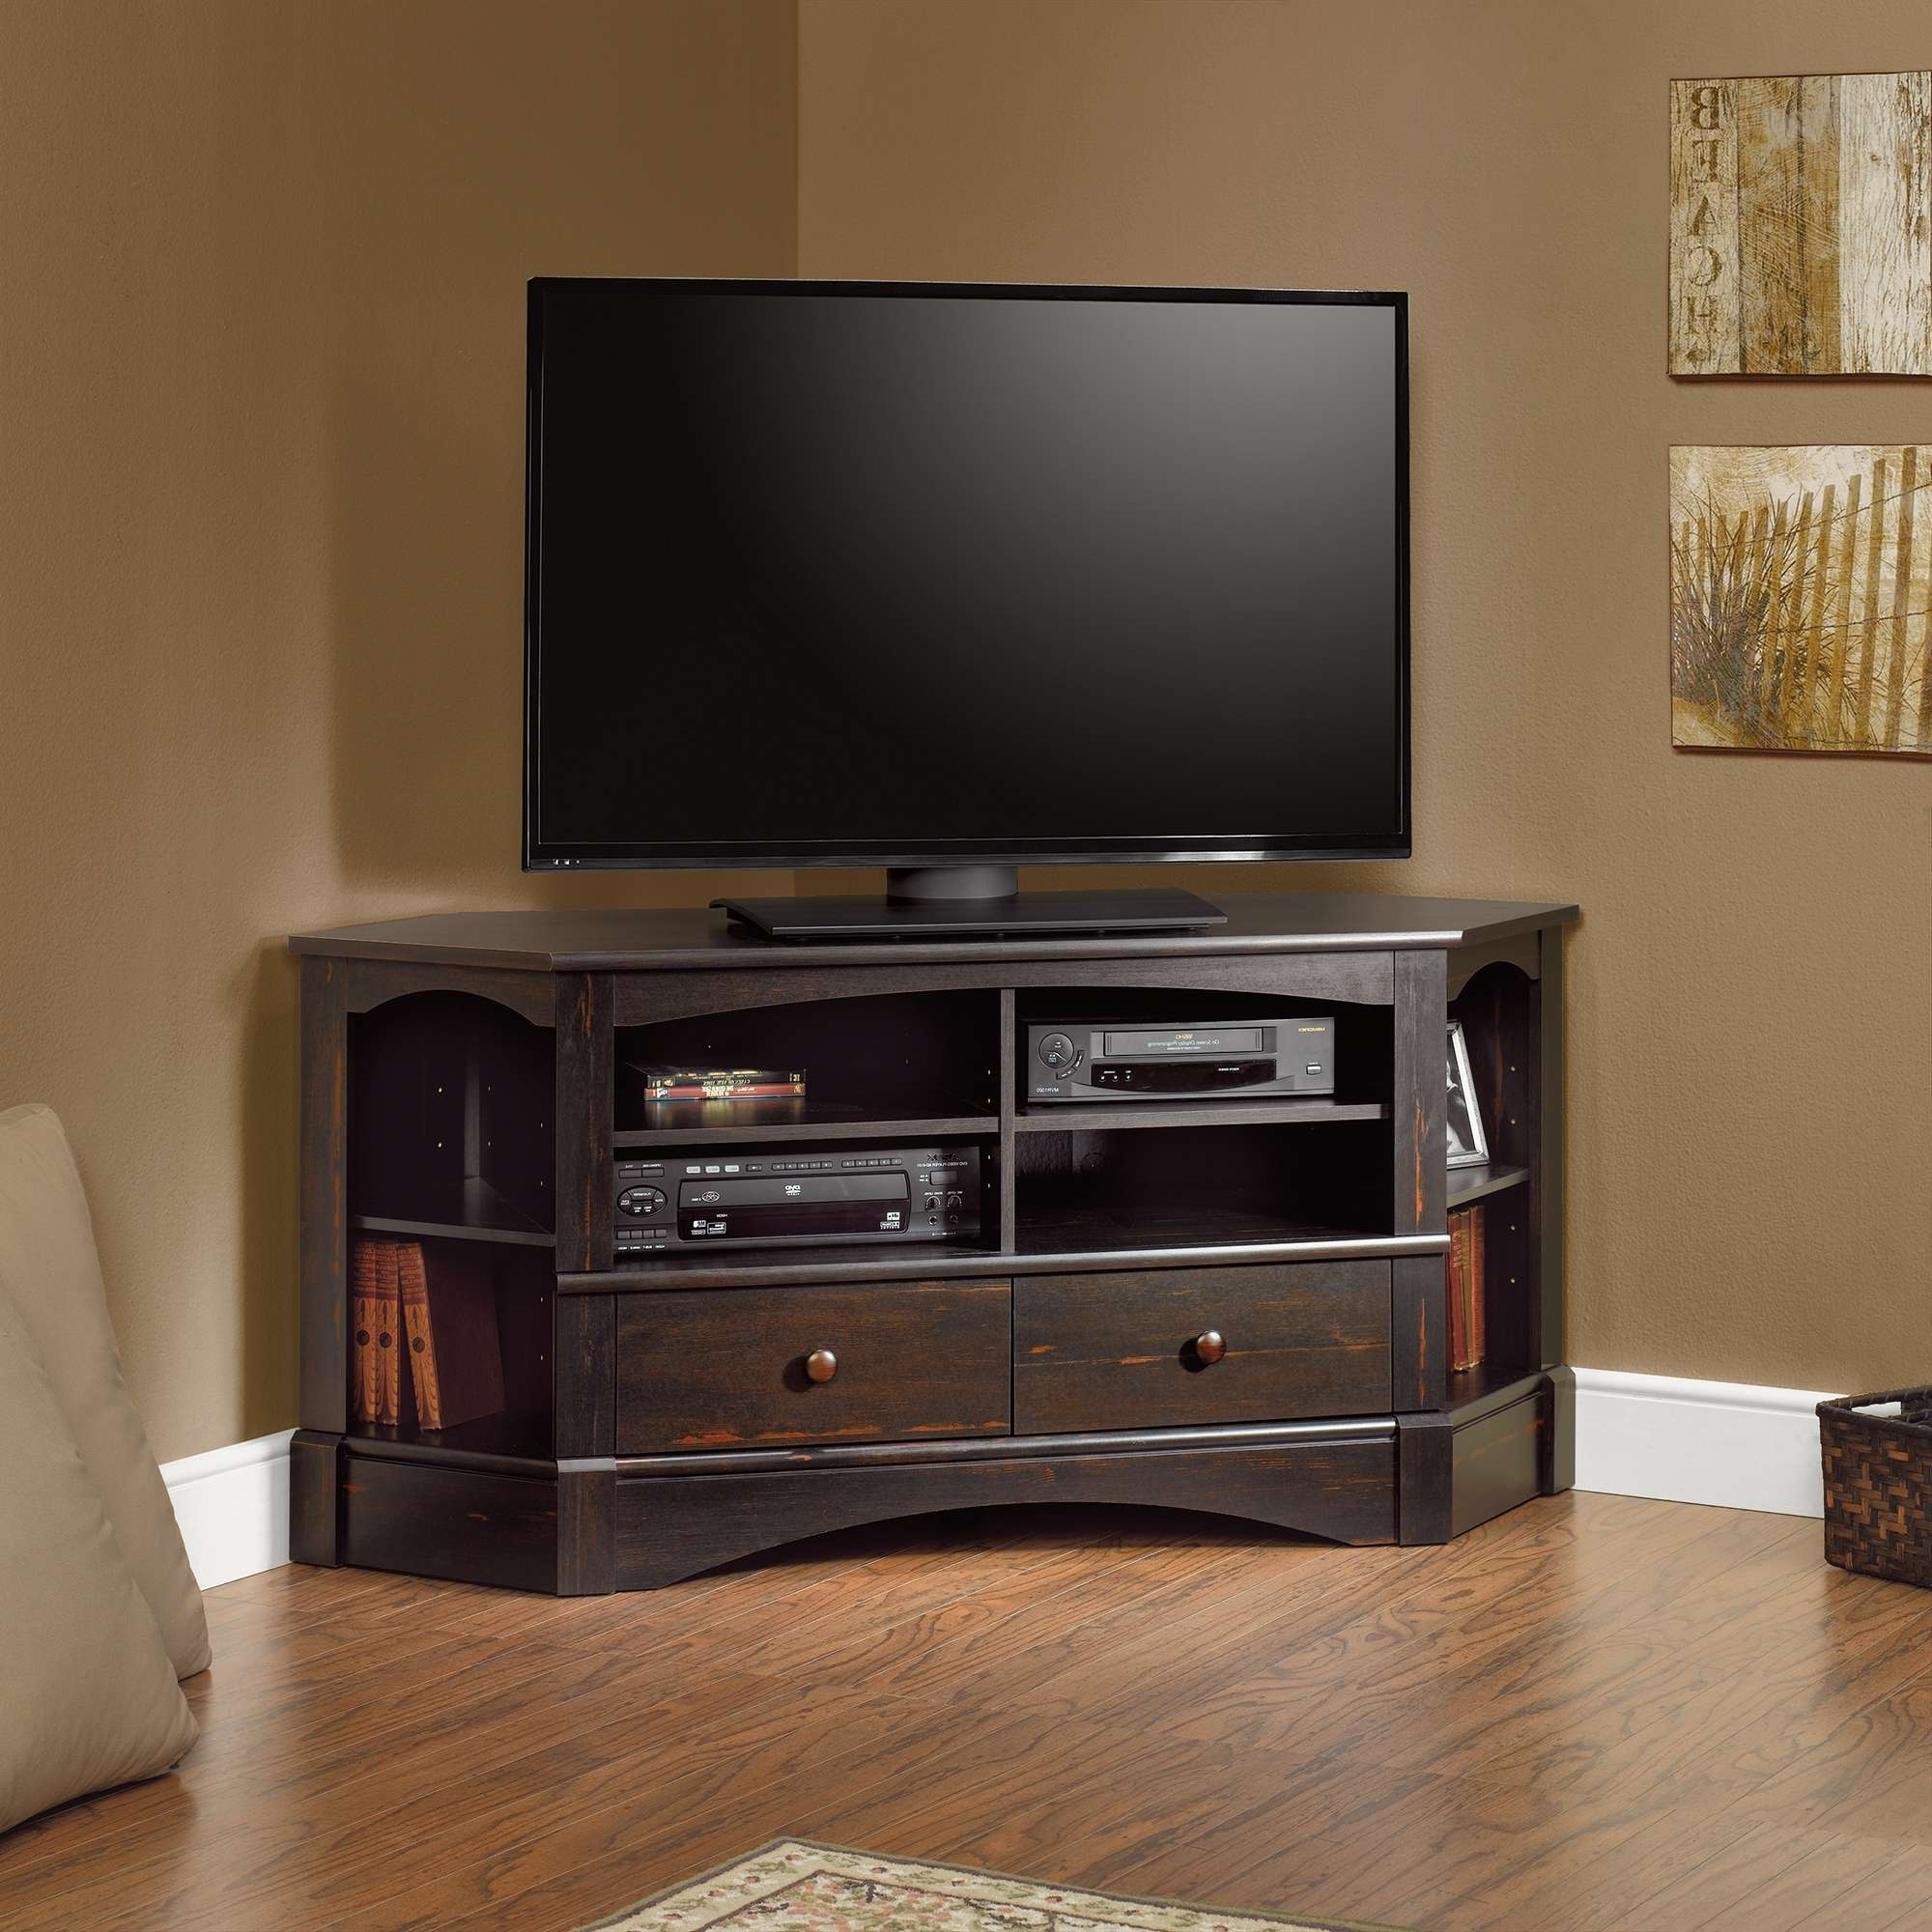 Harbor View | Corner Entertainment Credenza | 402902 | Sauder With Corner Tv Cabinets (View 10 of 20)